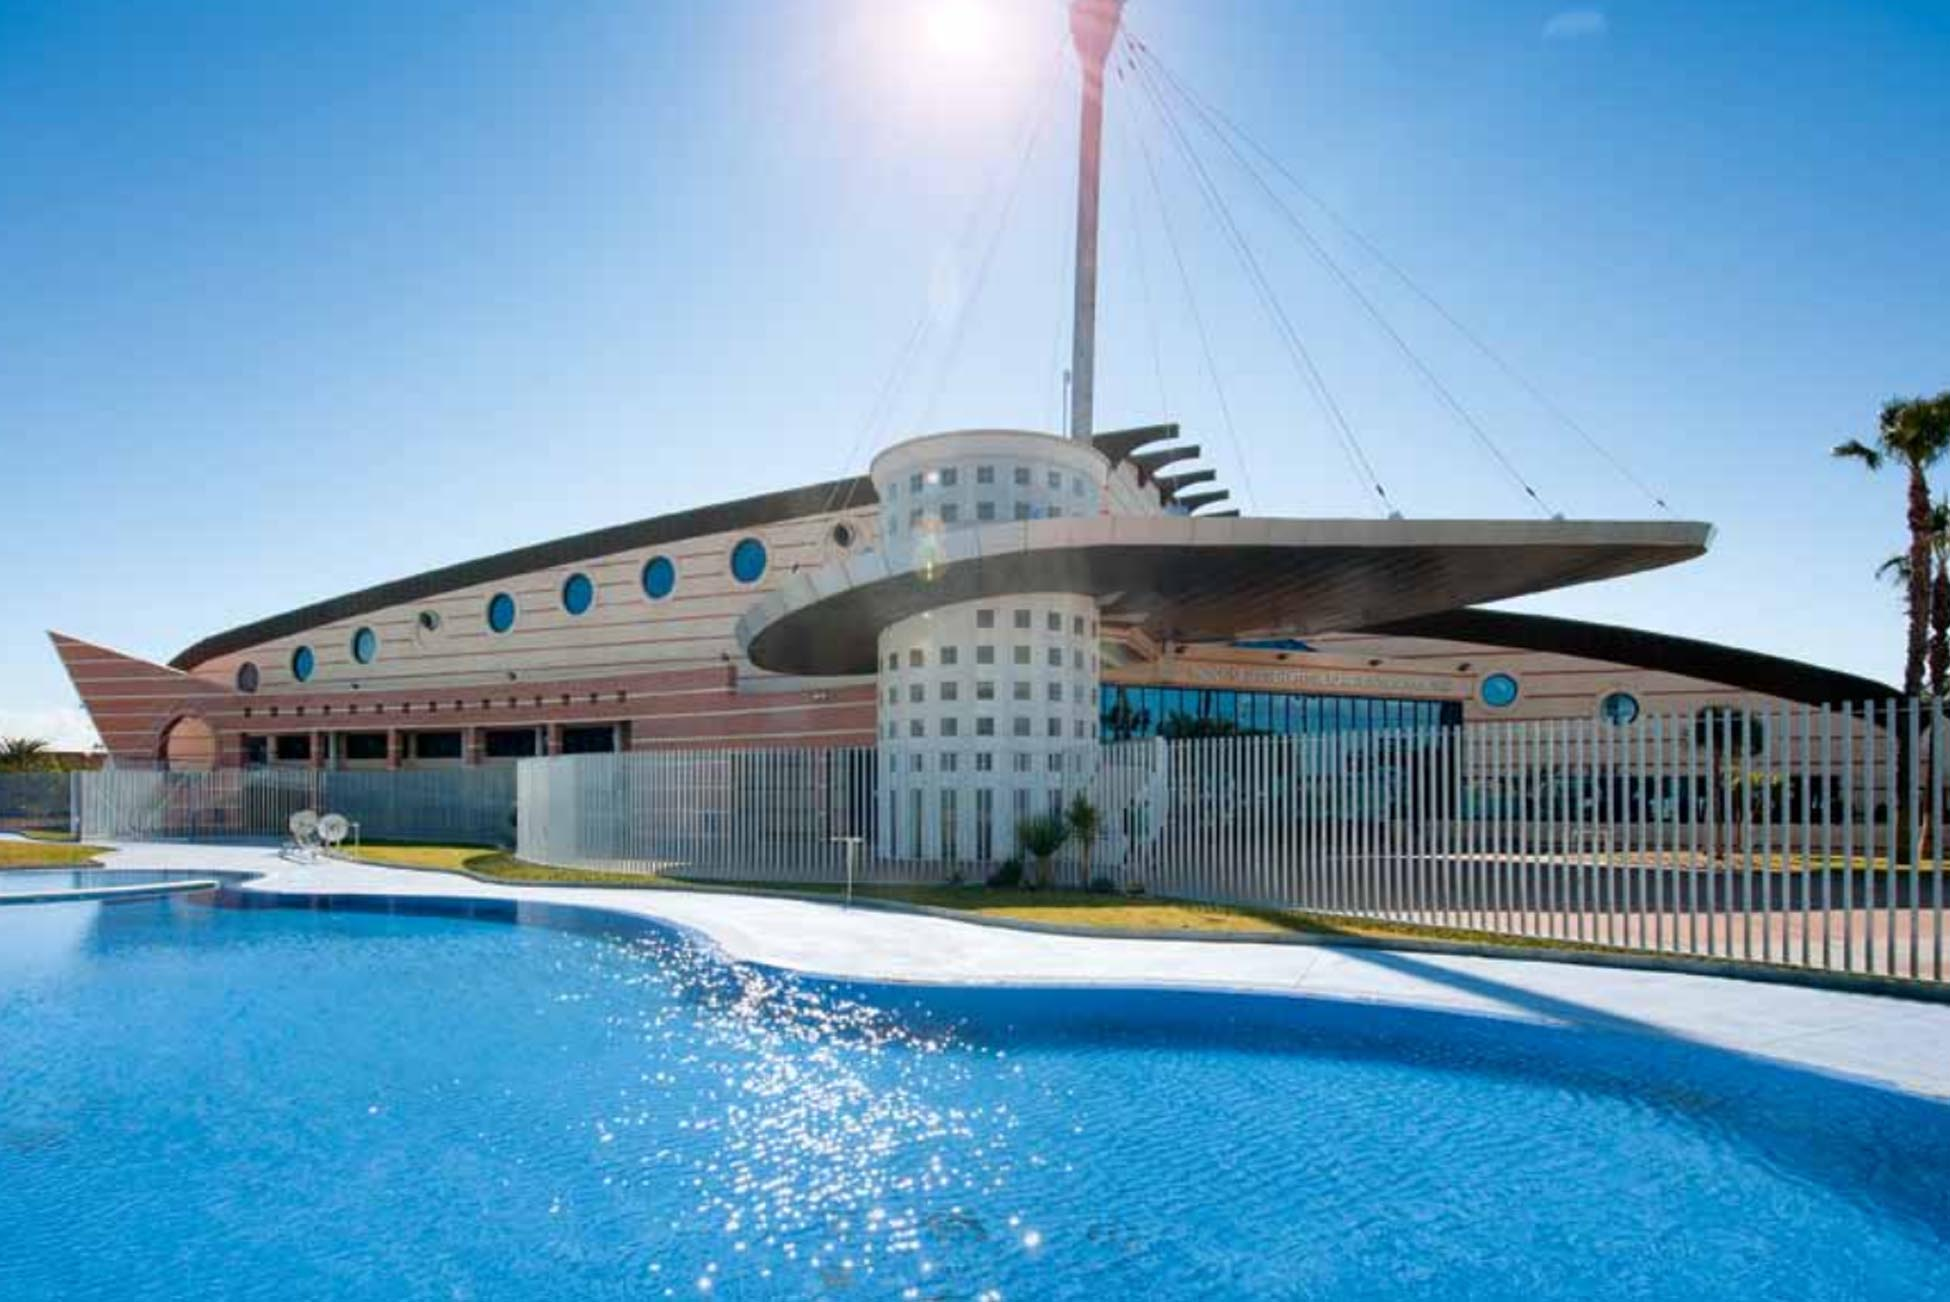 Dúplex_en_Los_Altos_Dúplex_in_Los_Altos_Dúplex_à_Los_Altos_Дуплекс_в_Los_Altos